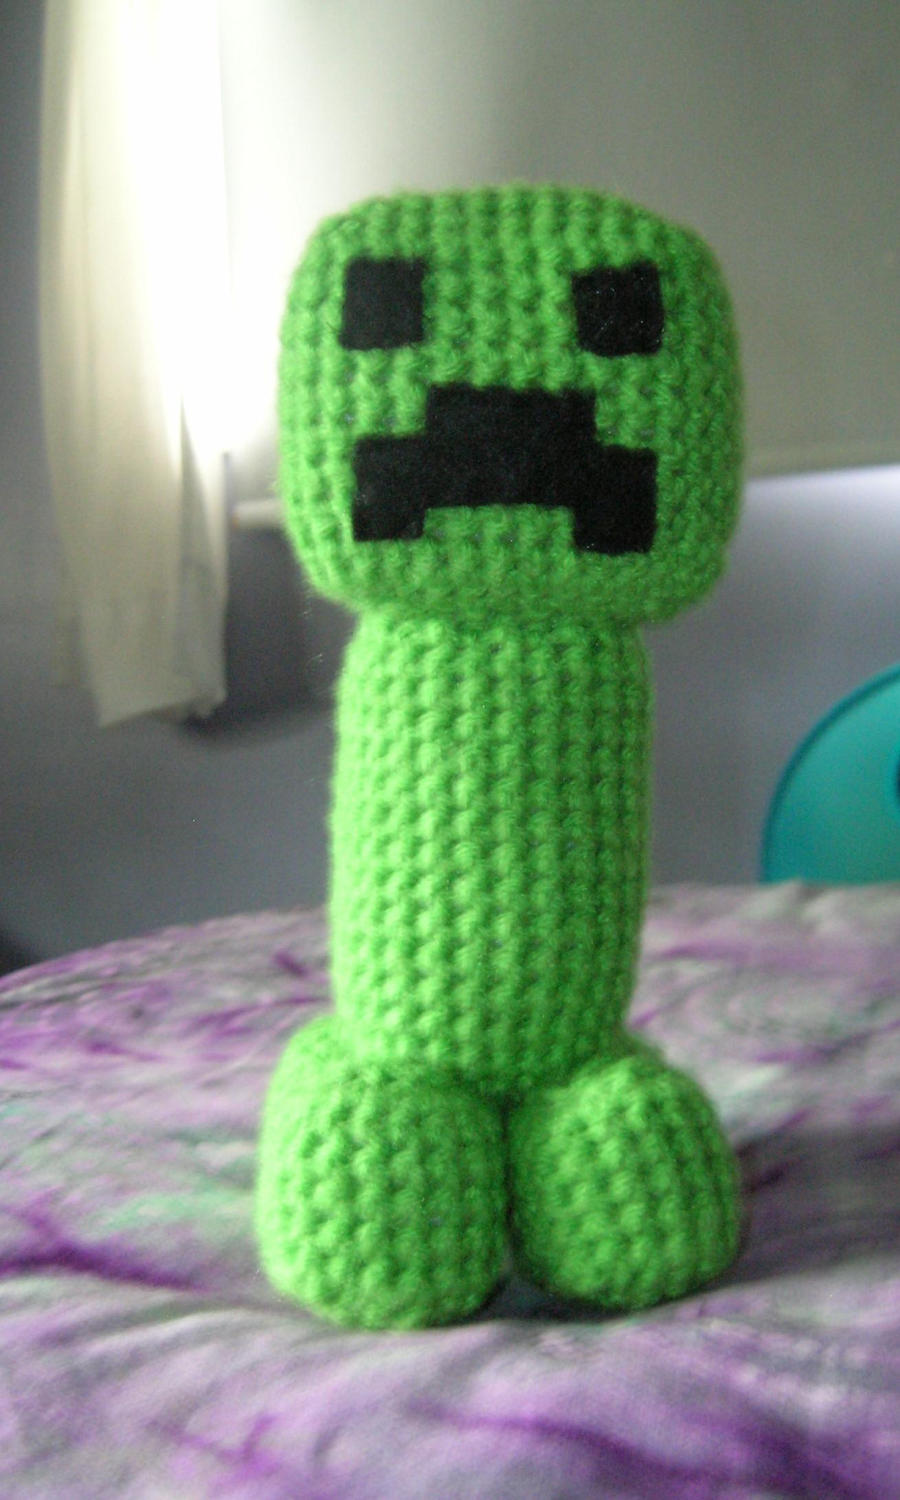 Orca Amigurumi Free Pattern : Amigurumi Minecraft Creeper 2 by FuzzyViper on DeviantArt